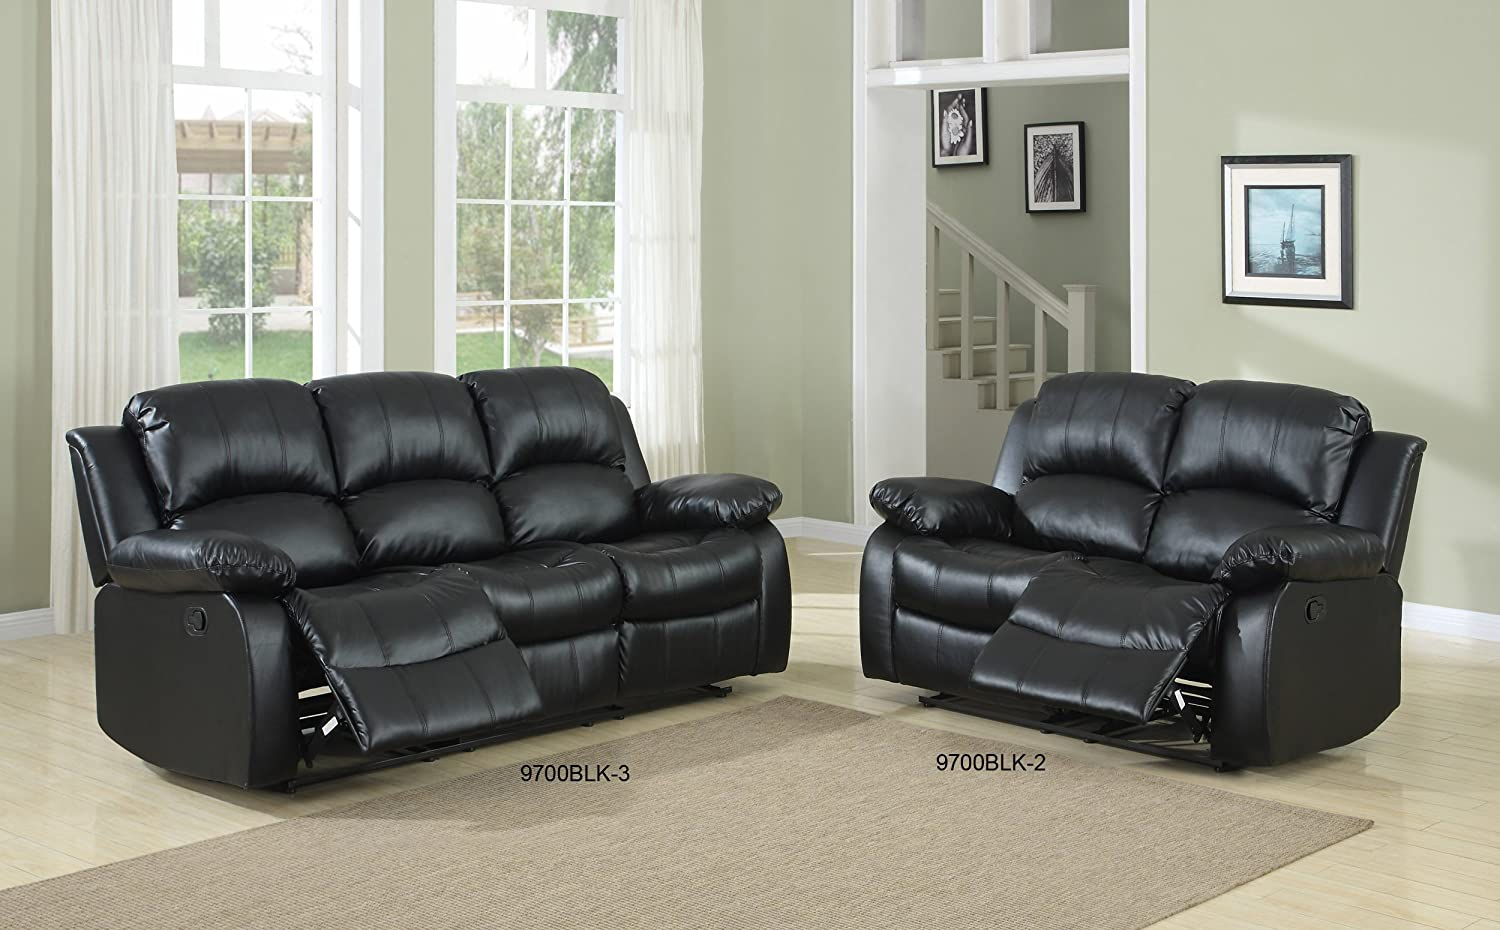 Amazoncom Homelegance Double Reclining Sofa Black Bonded - Leaky faucet bathroolearn leather dining room chairs on sale